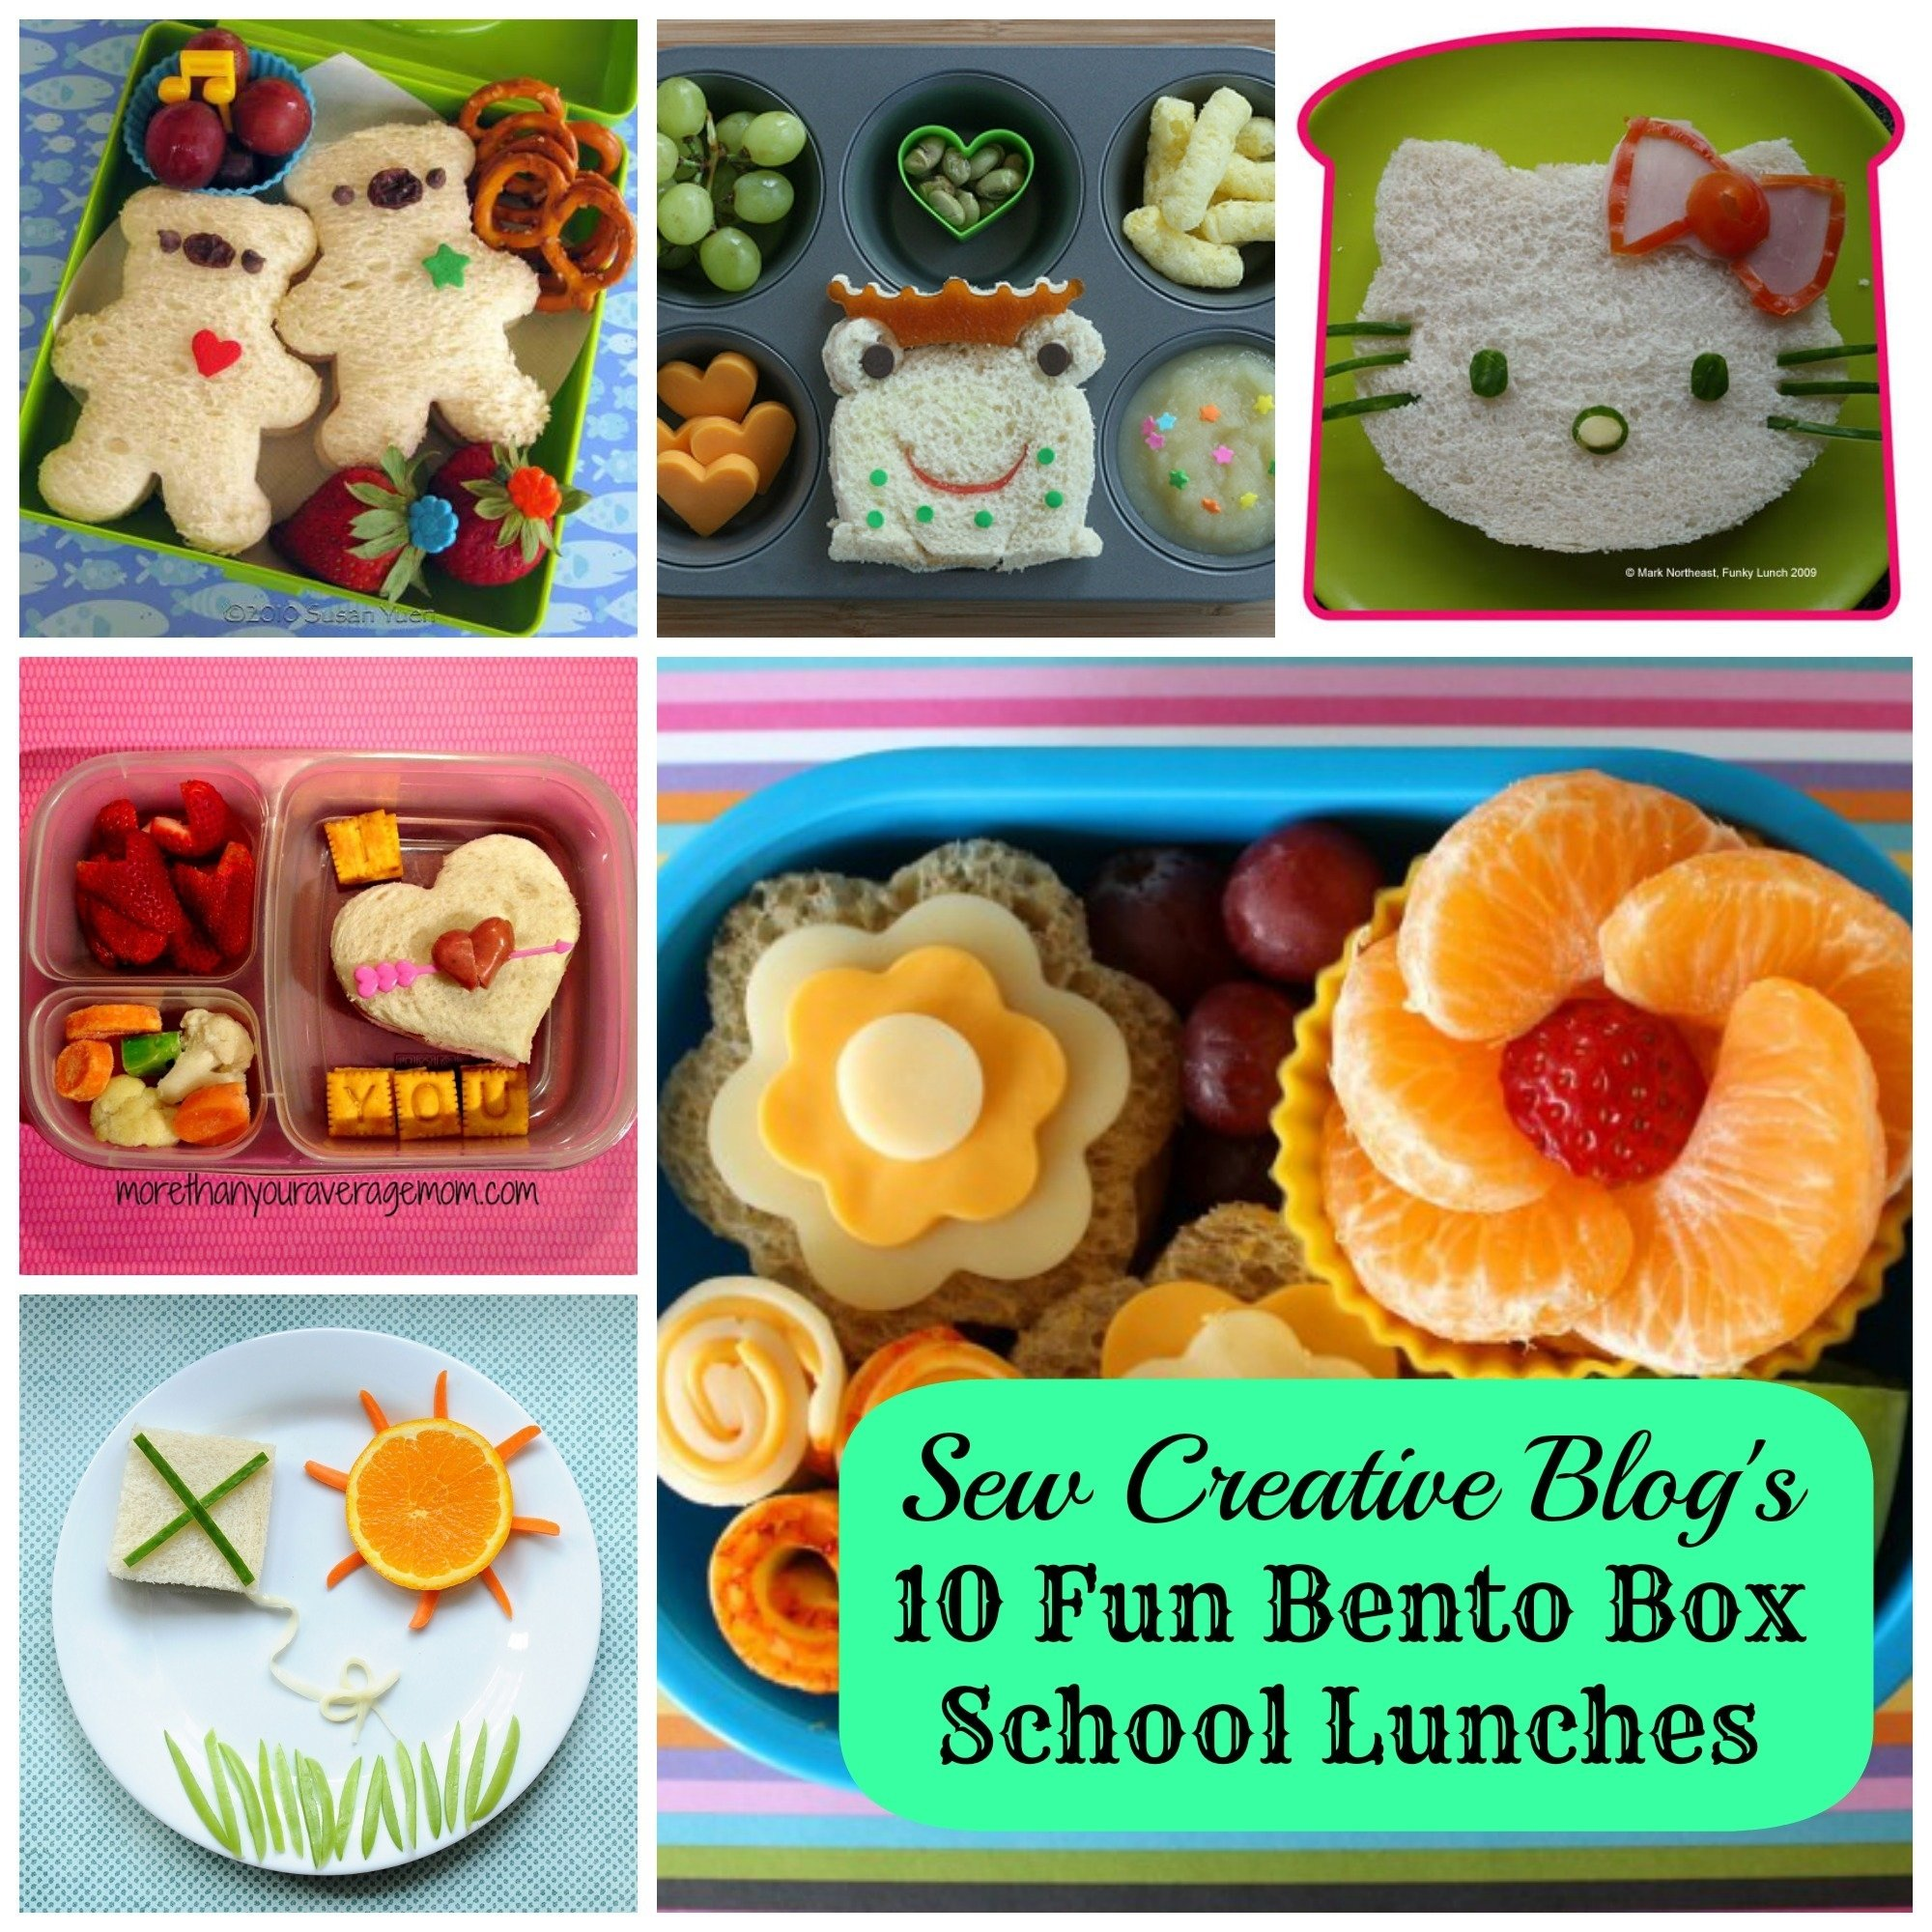 10 Attractive Bento Box Lunch Ideas For Adults weekly inspiration 10 fun bento box school lunches sew creative 6 2021